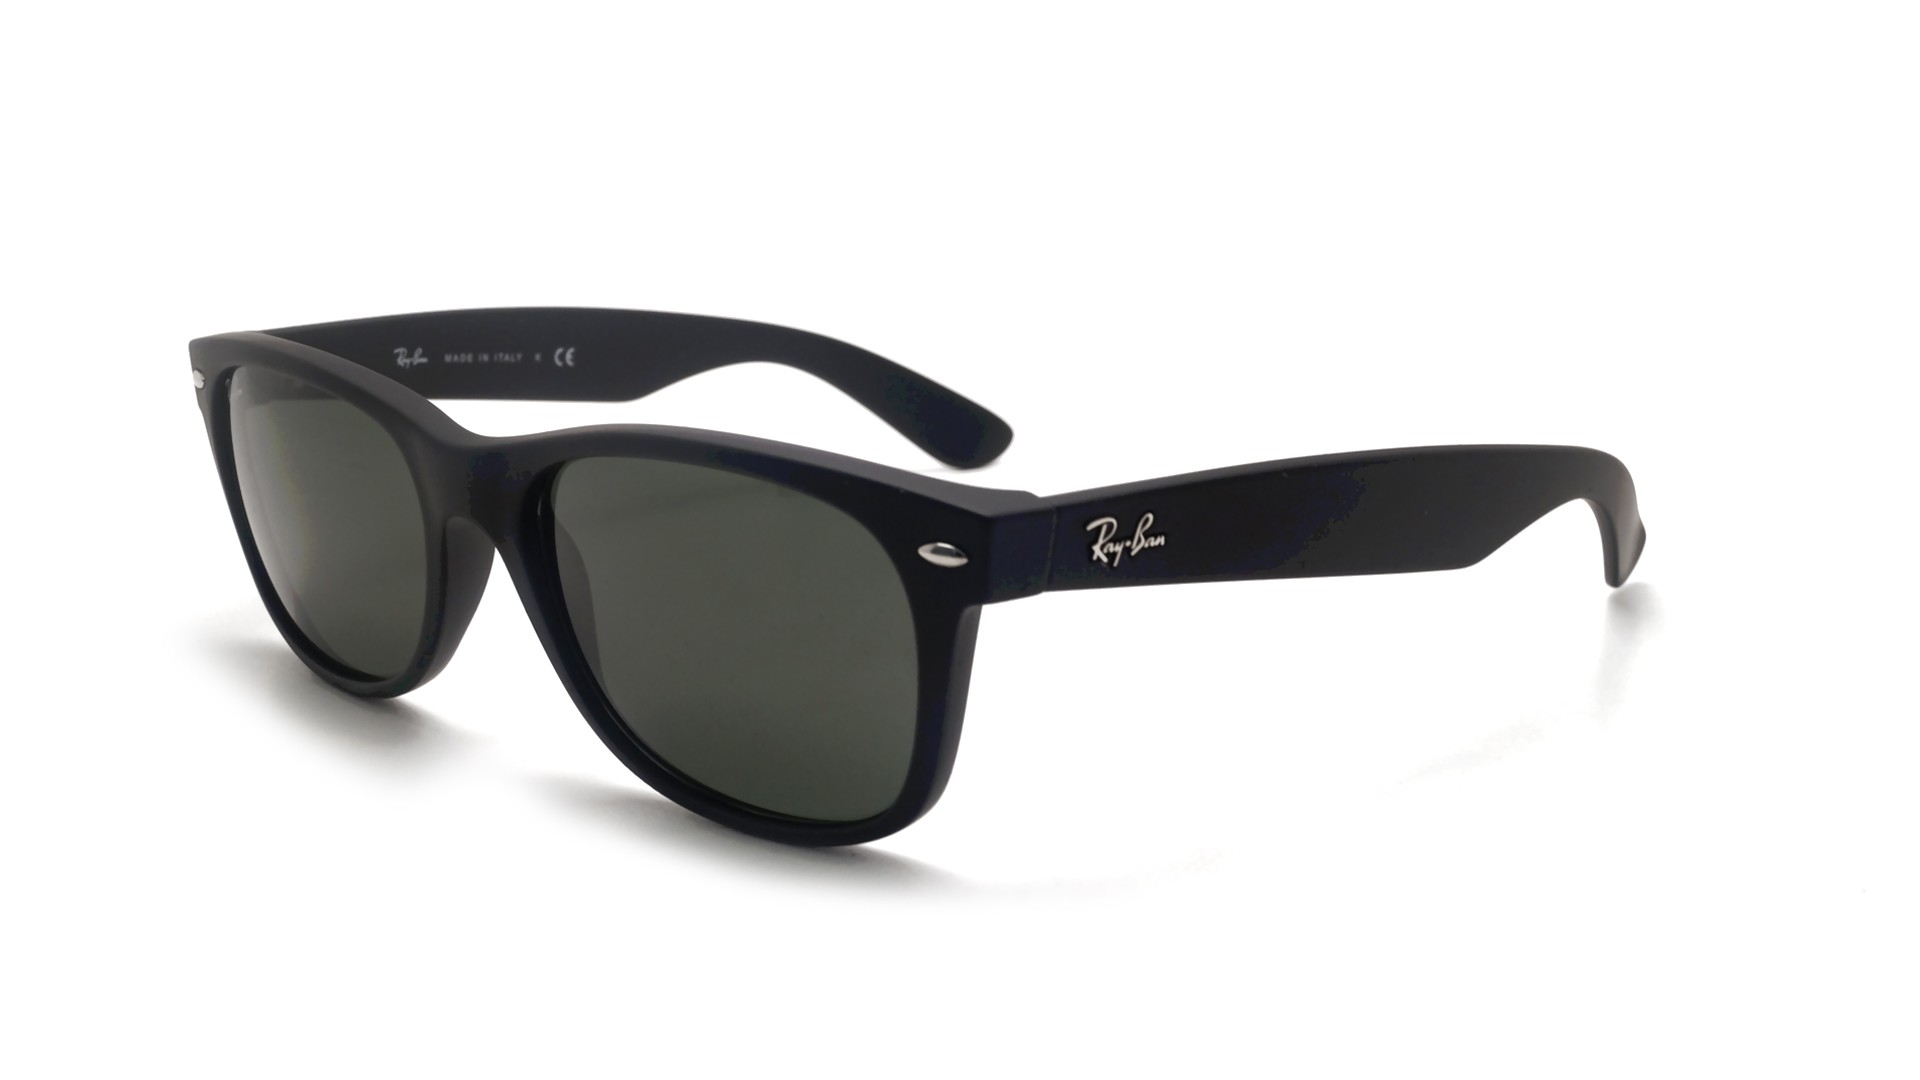 ray ban 2132 new wayfarer  Ban New Wayfarer Black Matte RB2132 622 52-18